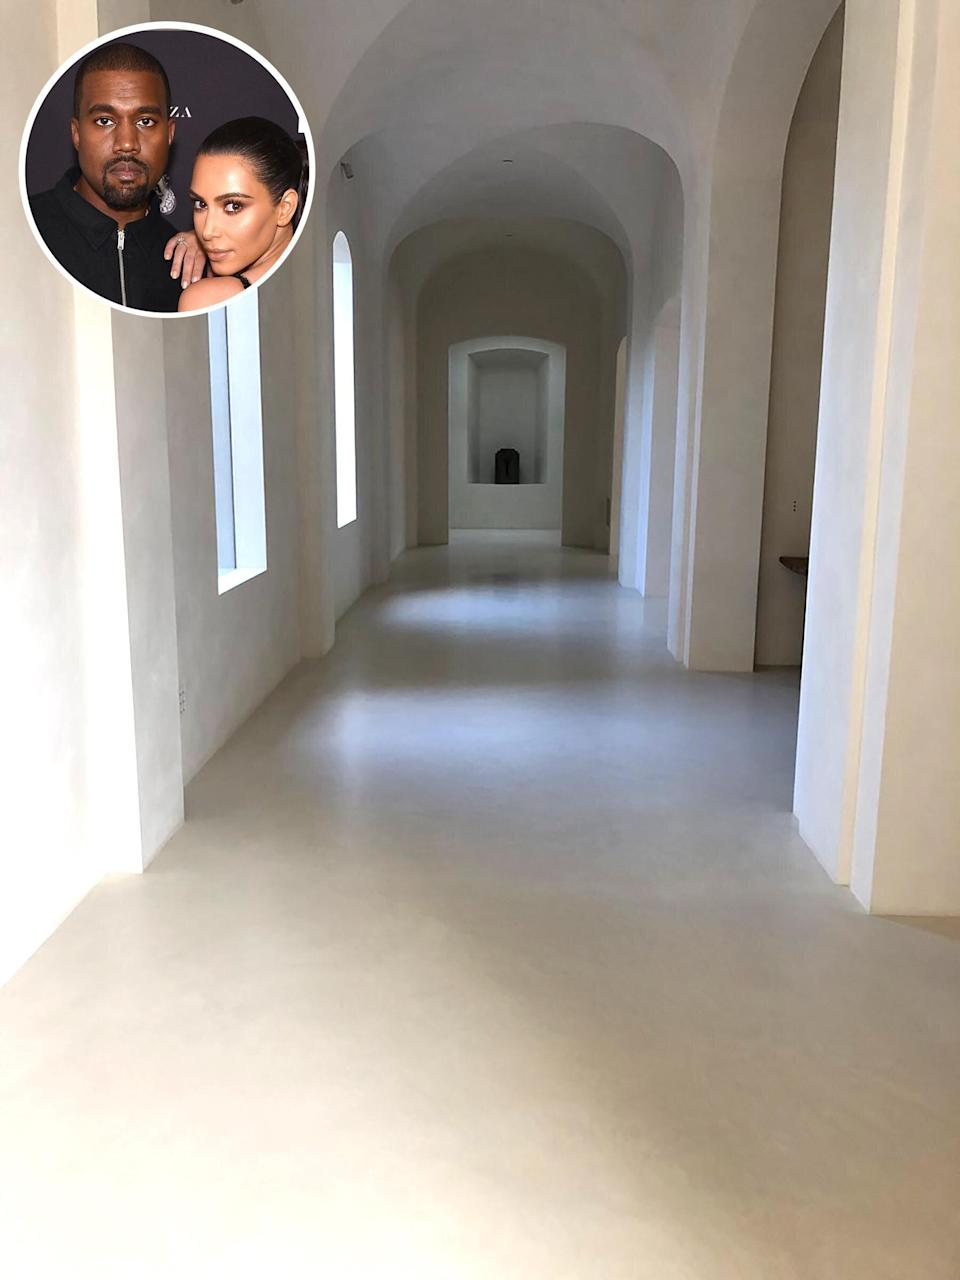 """Kanye West got in a bit of trouble with his wife Kim Kardashian West, when he shared<a href=""""https://people.com/home/kanye-west-posts-photos-inside-20m-house-as-kim-responds-we-had-a-rule-to-not-show-our-home/"""" rel=""""nofollow noopener"""" target=""""_blank"""" data-ylk=""""slk:images of the interior of their Hidden Hills home"""" class=""""link rapid-noclick-resp""""> images of the interior of their Hidden Hills home</a> on Twitter in April 2018. """"Ummm babe. We had a rule to not show our home on social media! Soooo can we now allow KUWTK filming in the home?"""" she tweeted. She <a href=""""https://twitter.com/KimKardashian/status/989178154953592832"""" rel=""""nofollow noopener"""" target=""""_blank"""" data-ylk=""""slk:later clarified"""" class=""""link rapid-noclick-resp"""">later clarified</a> that her message was meant to be a joke. Since then, the Wests have seemingly been less strict about showing off their mansion to the world. Here are the best snaps they've shared inside their <a href=""""https://people.com/home/kanye-west-posts-photos-inside-20m-house-as-kim-responds-we-had-a-rule-to-not-show-our-home/"""" rel=""""nofollow noopener"""" target=""""_blank"""" data-ylk=""""slk:$60 million family home"""" class=""""link rapid-noclick-resp"""">$60 million family home</a>."""